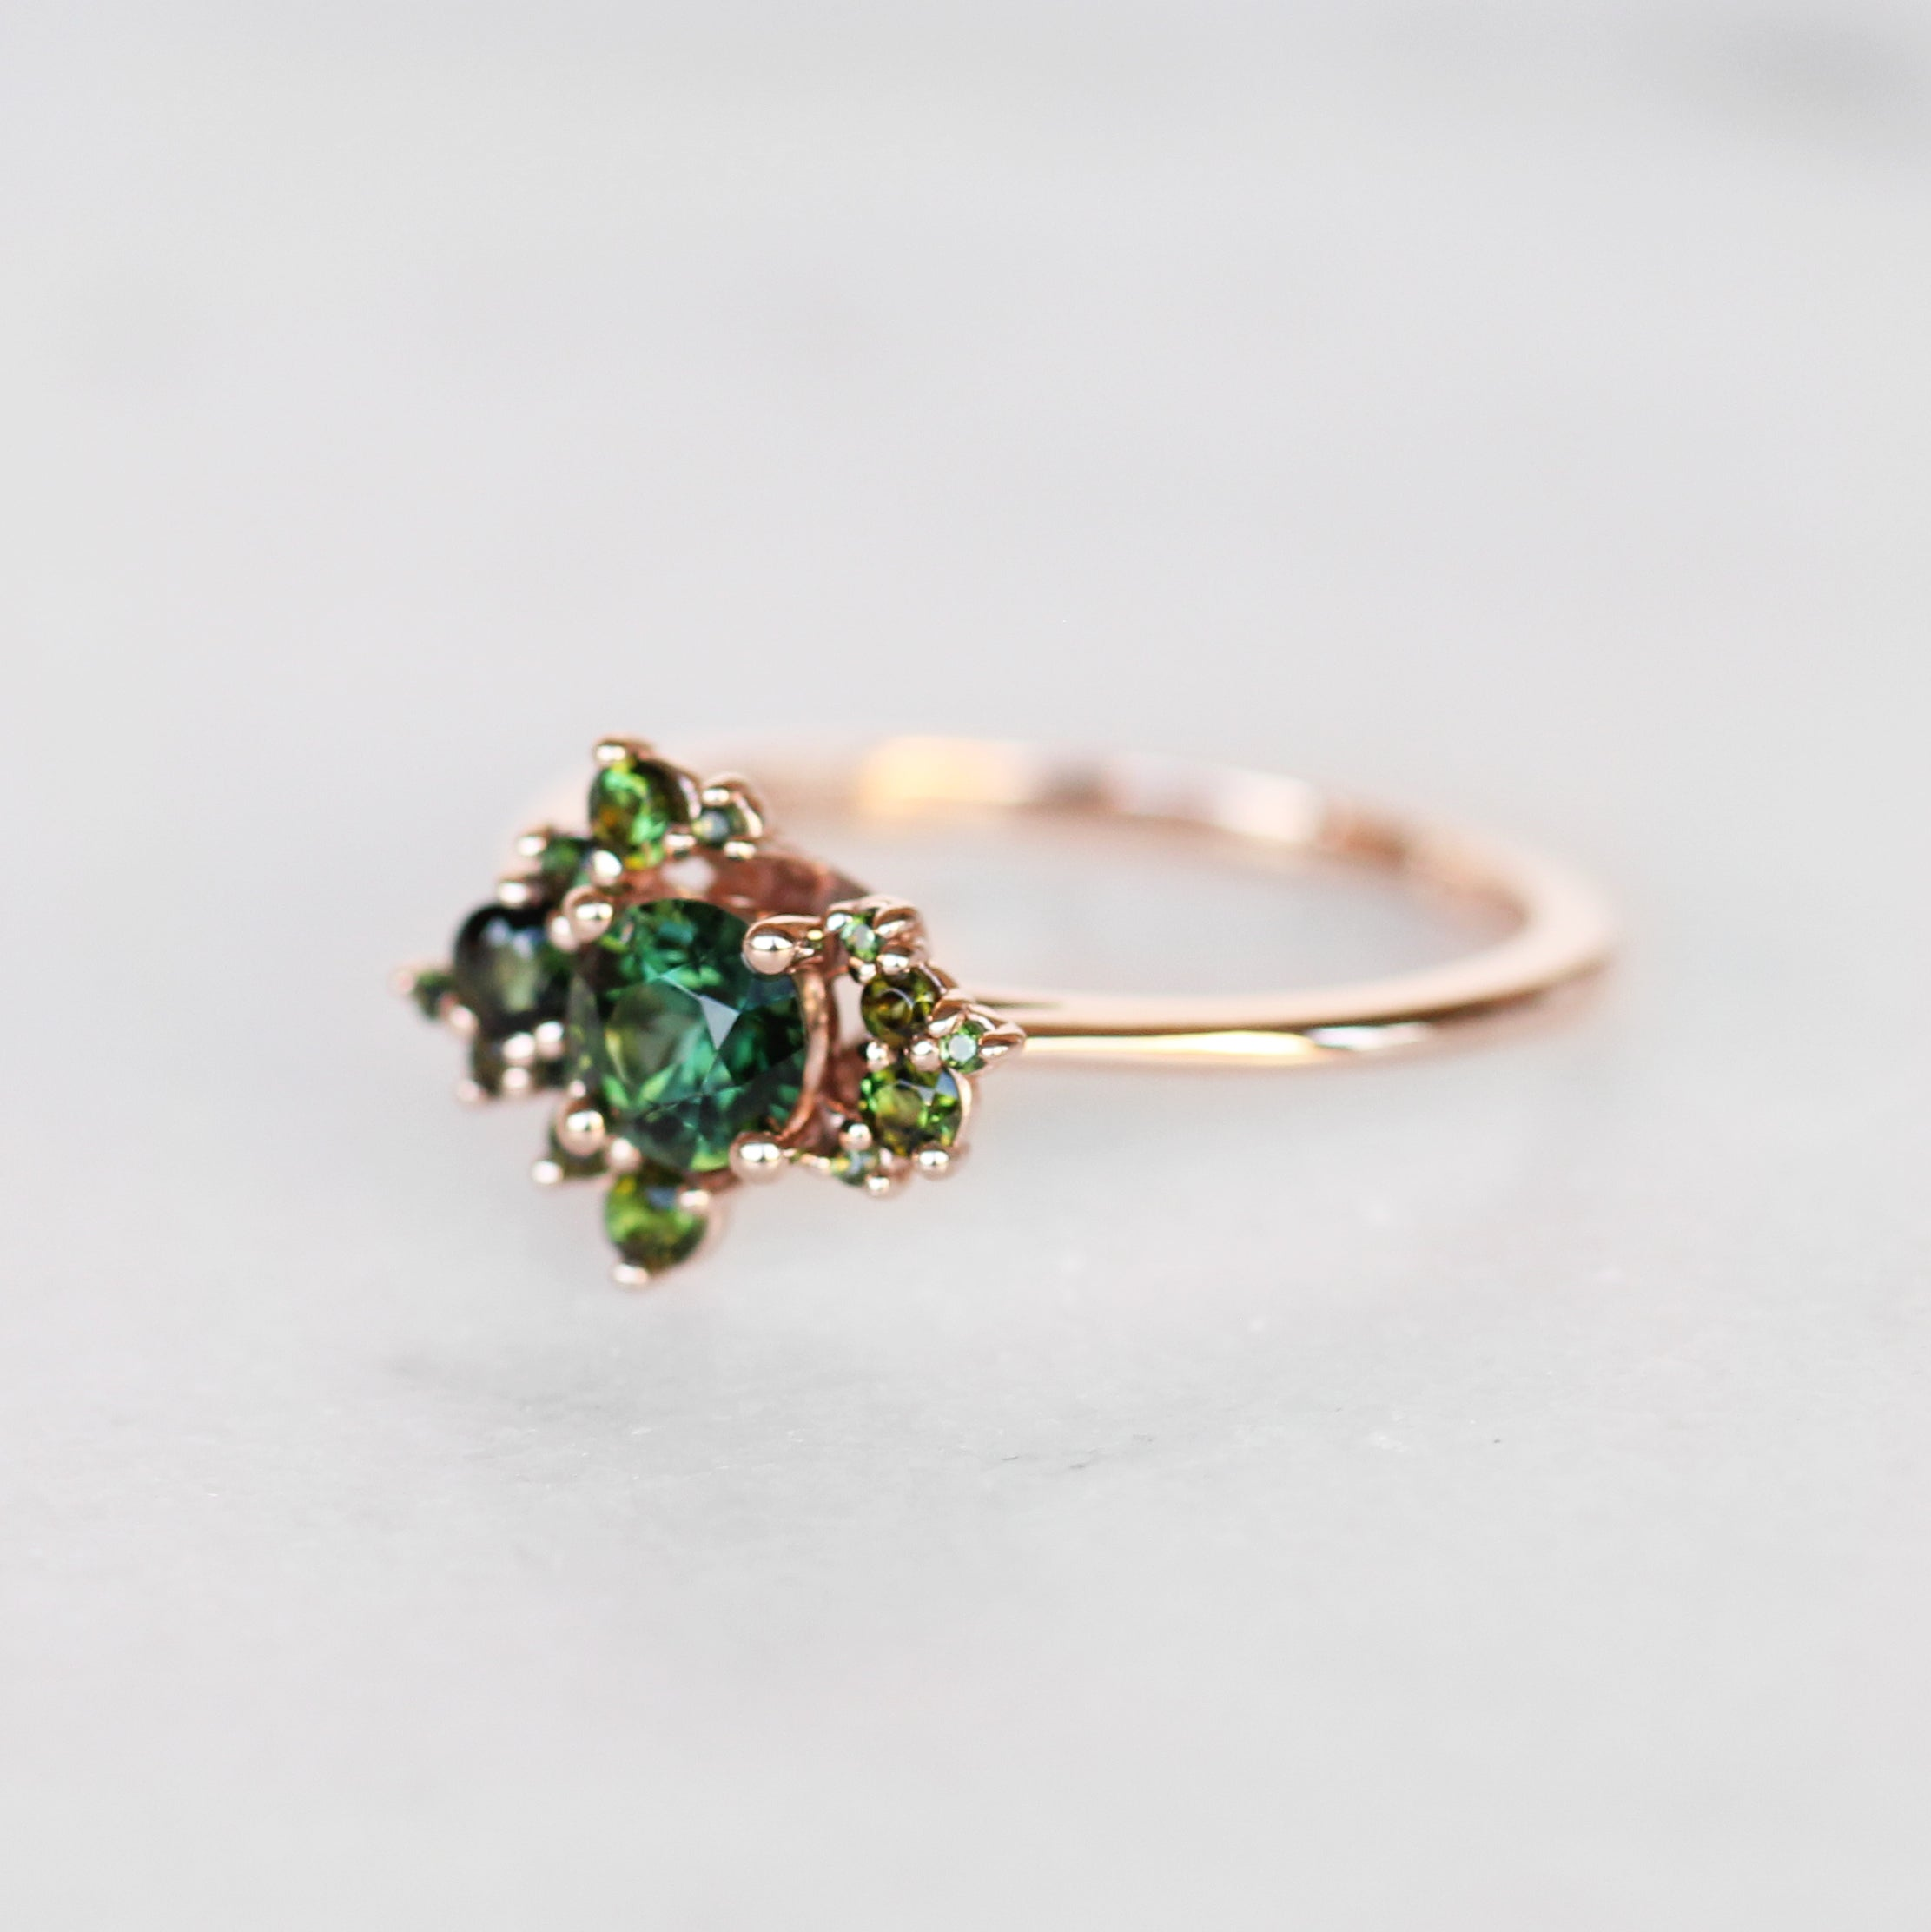 Orion Ring with all Tourmaline - Cluster ring - Salt & Pepper Celestial Diamond Engagement Rings and Wedding Bands  by Midwinter Co.